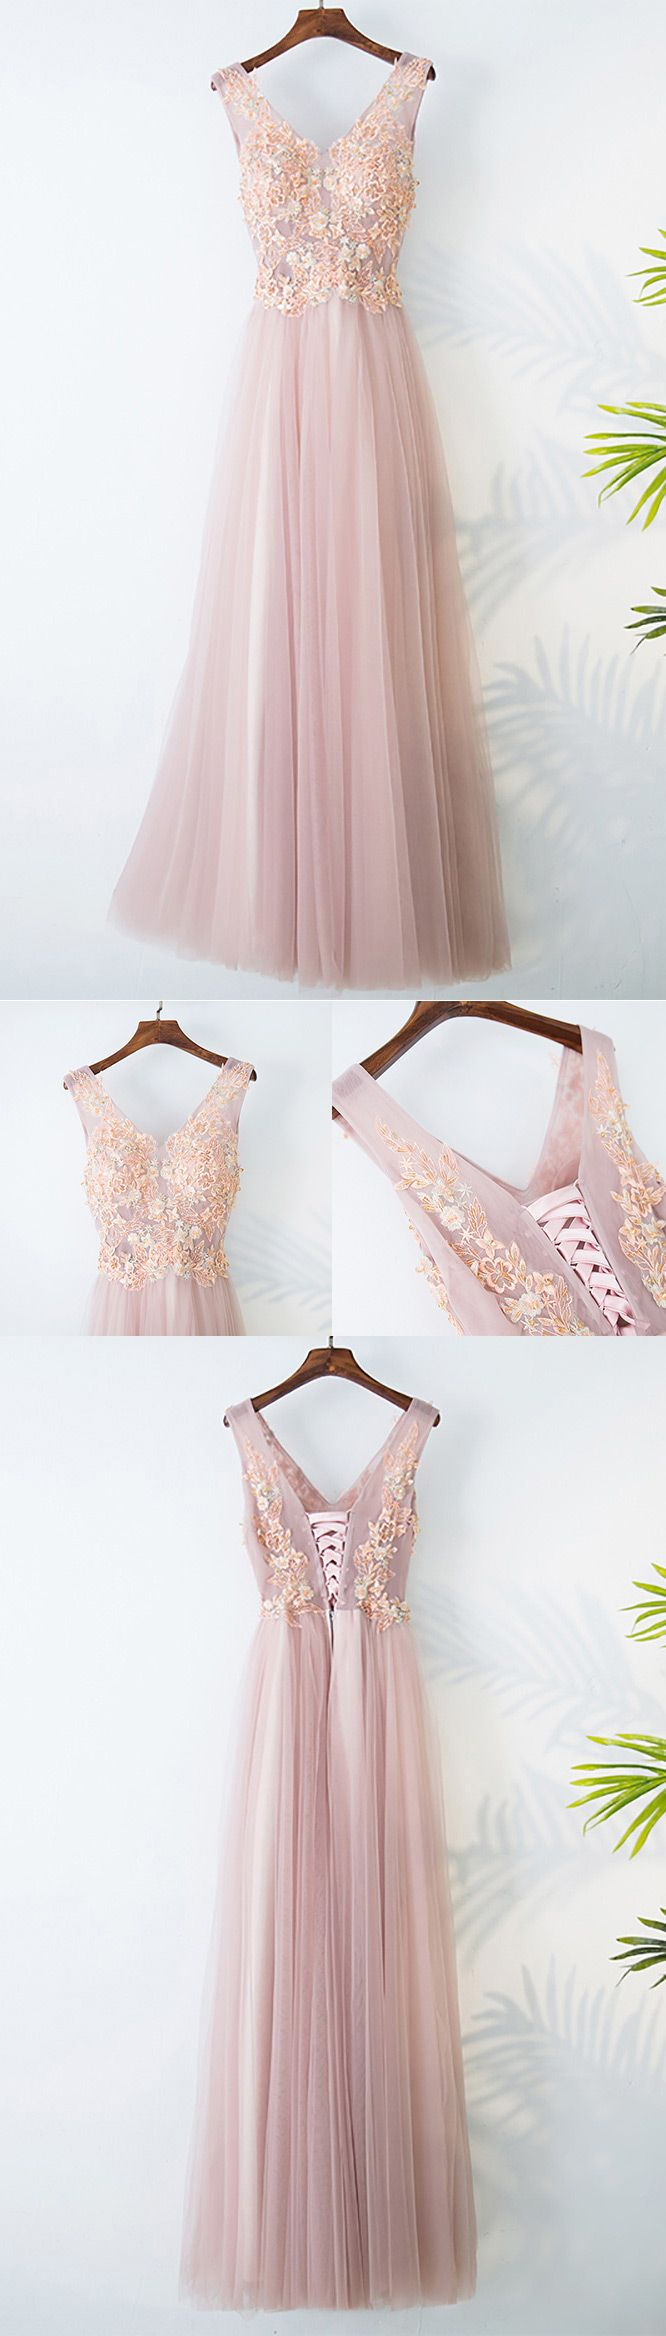 Only $118, Gorgeous Pink Tulle Long Prom Dress Lace Sleeveless #MYX18012 at #SheProm. SheProm is an online store with thousands of dresses, range from Prom,Homecoming,Party,Pink,A Line Dresses,Long Dresses,Customizable Dresses and so on. Not only selling formal dresses, more and more trendy dress styles will be updated daily to our store. With low price and high quality guaranteed, you will definitely like shopping from us.